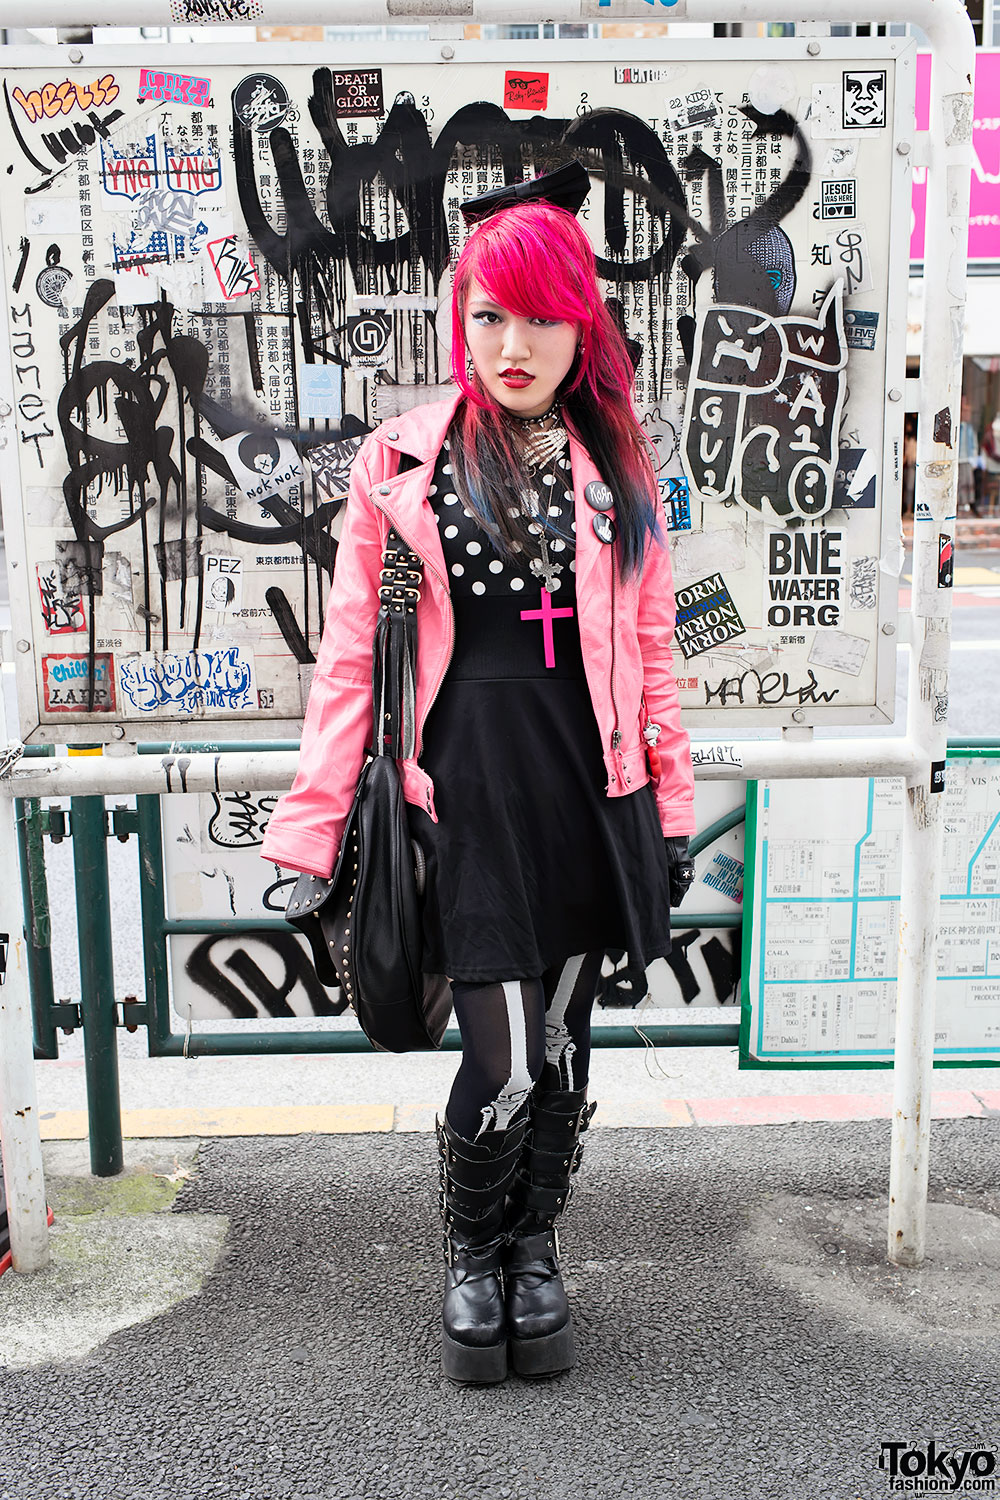 Pink Hair & Pink Leather Jacket